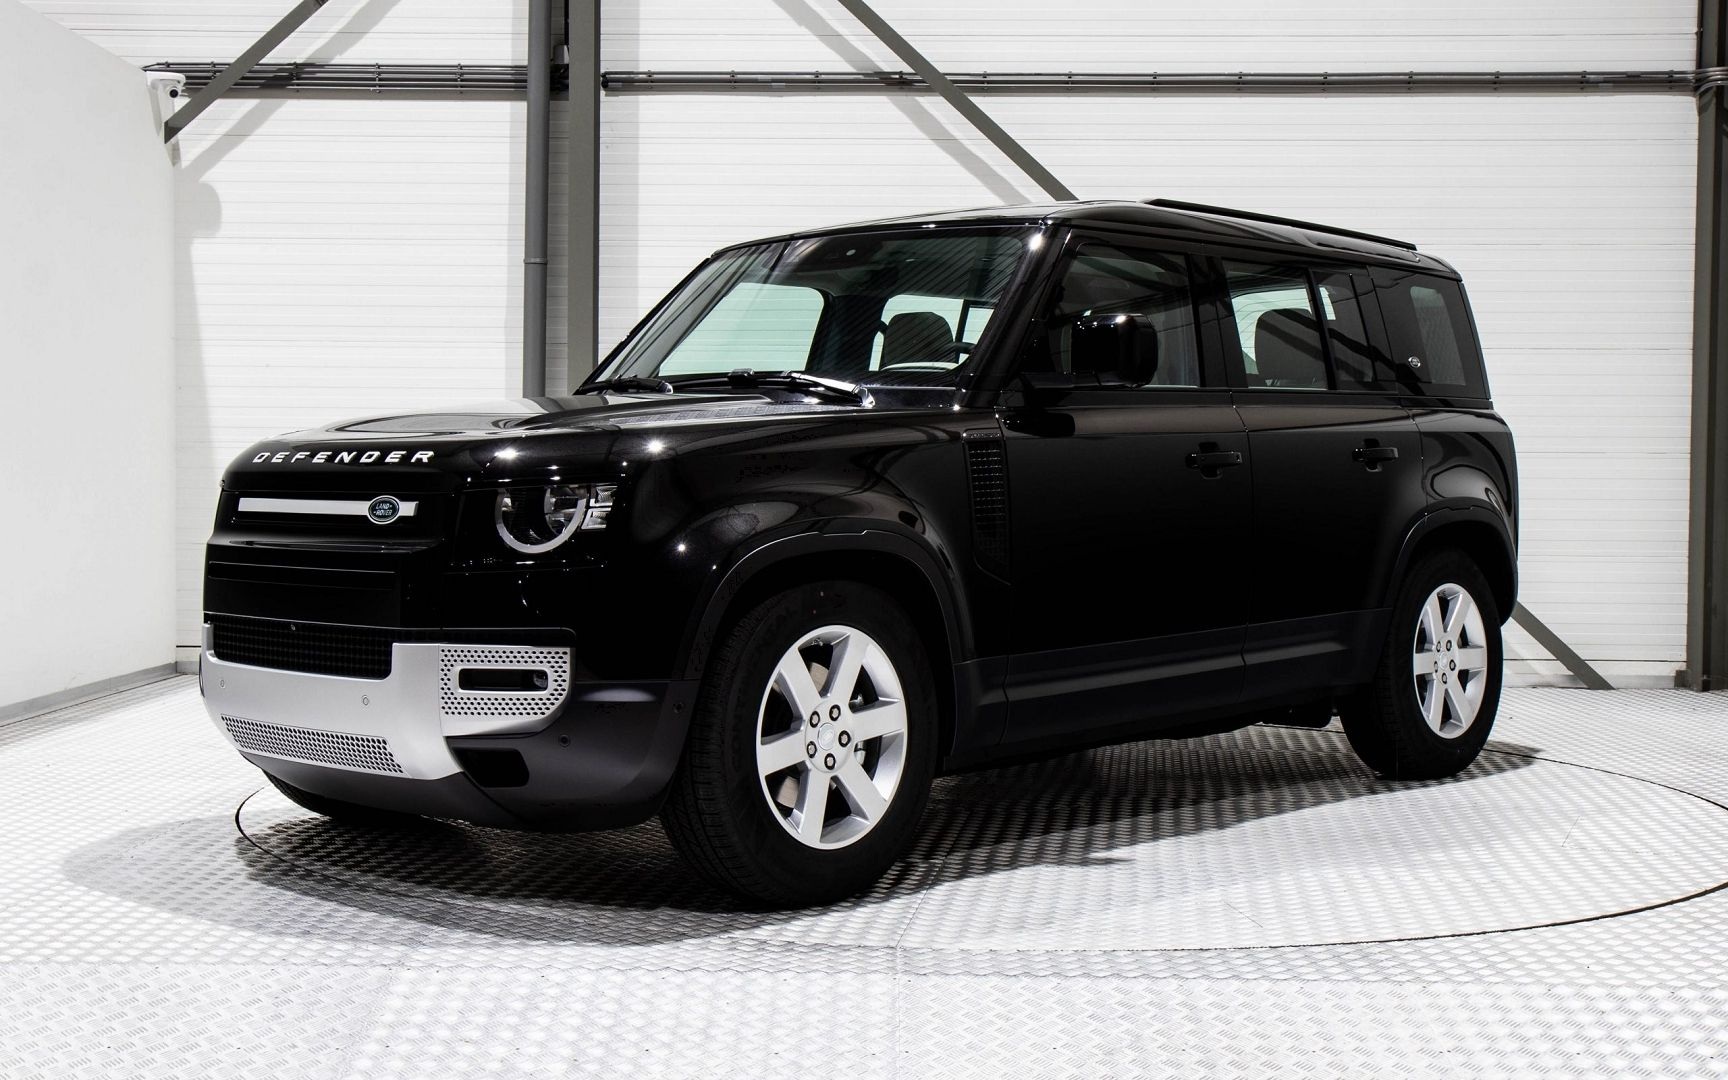 LAND-ROVER - DEFENDER - 110 2.0 D240 FIRST EDITION n° 1